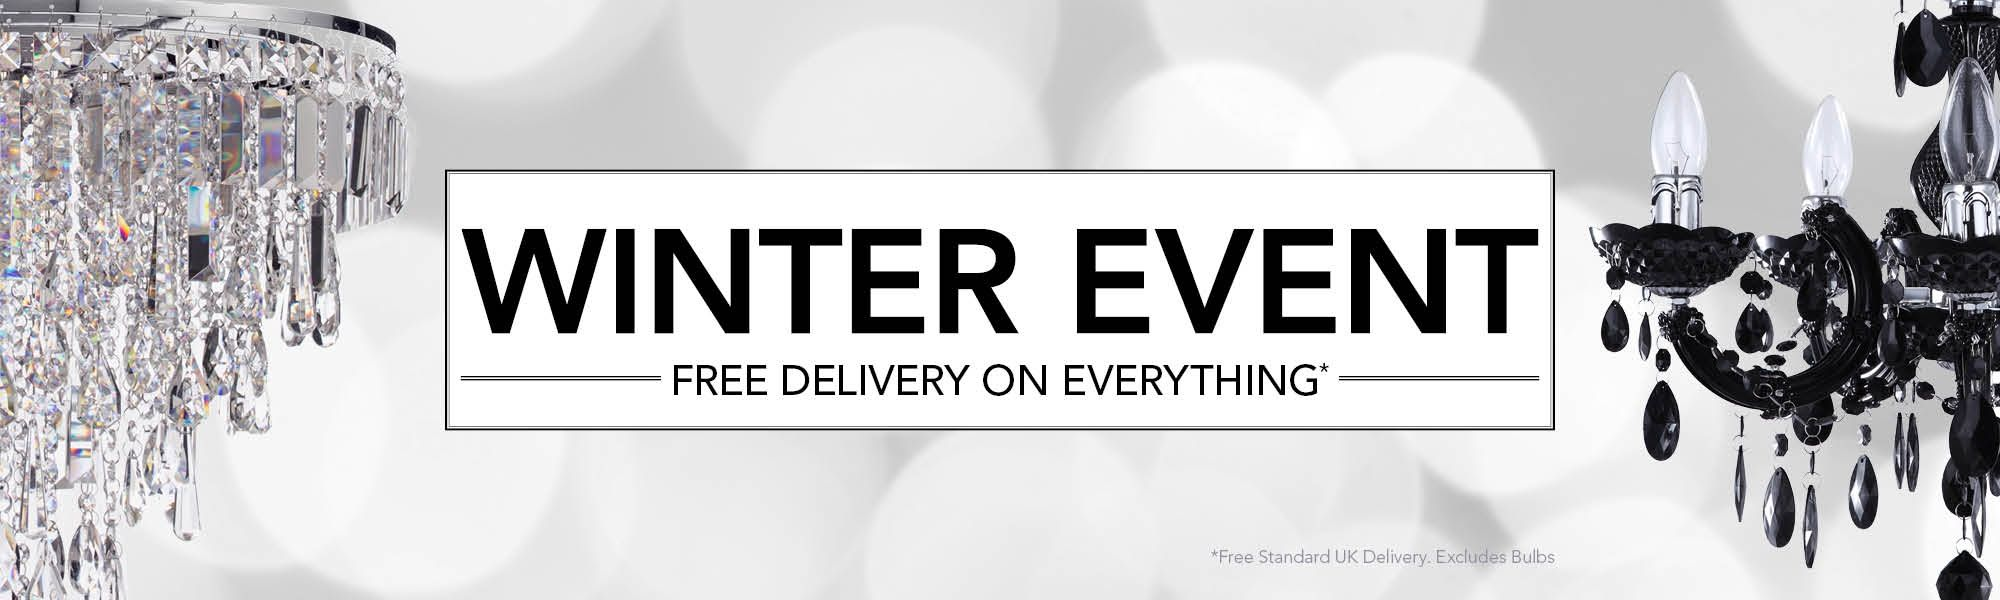 Winter Event - Free Delivery on Everything*